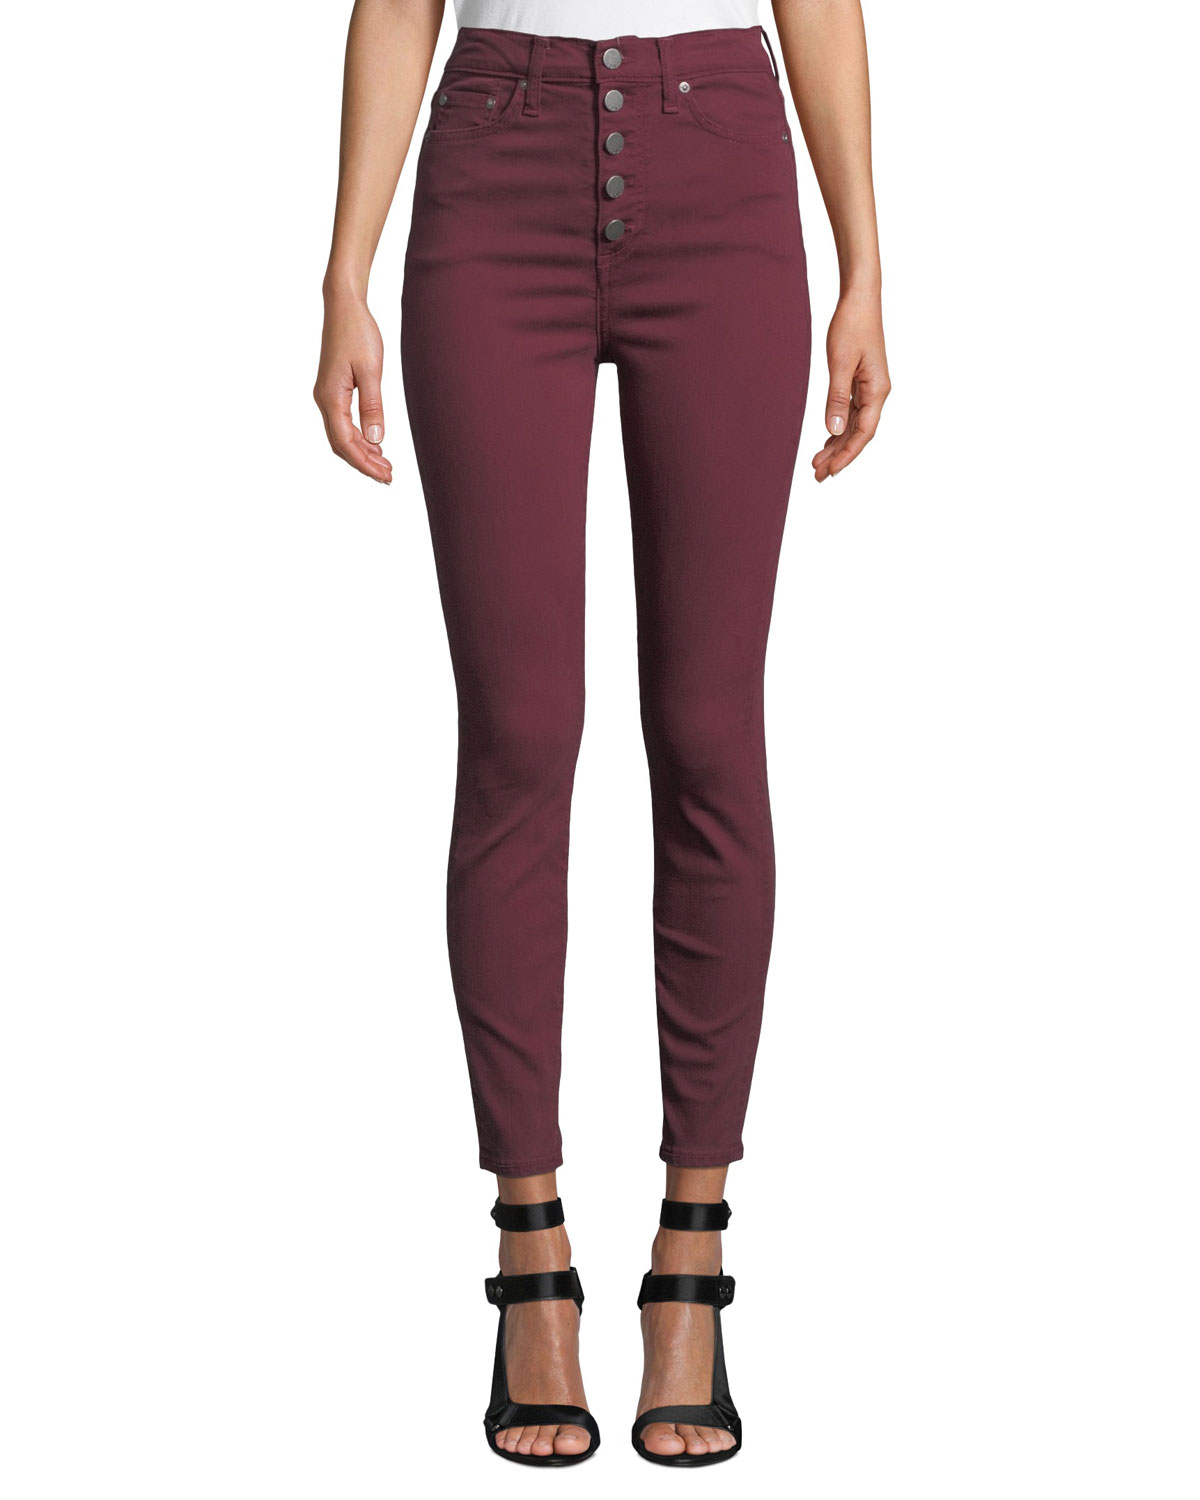 Good High-Rise Twill Skinny Jeans With Exposed Fly, Dark Red